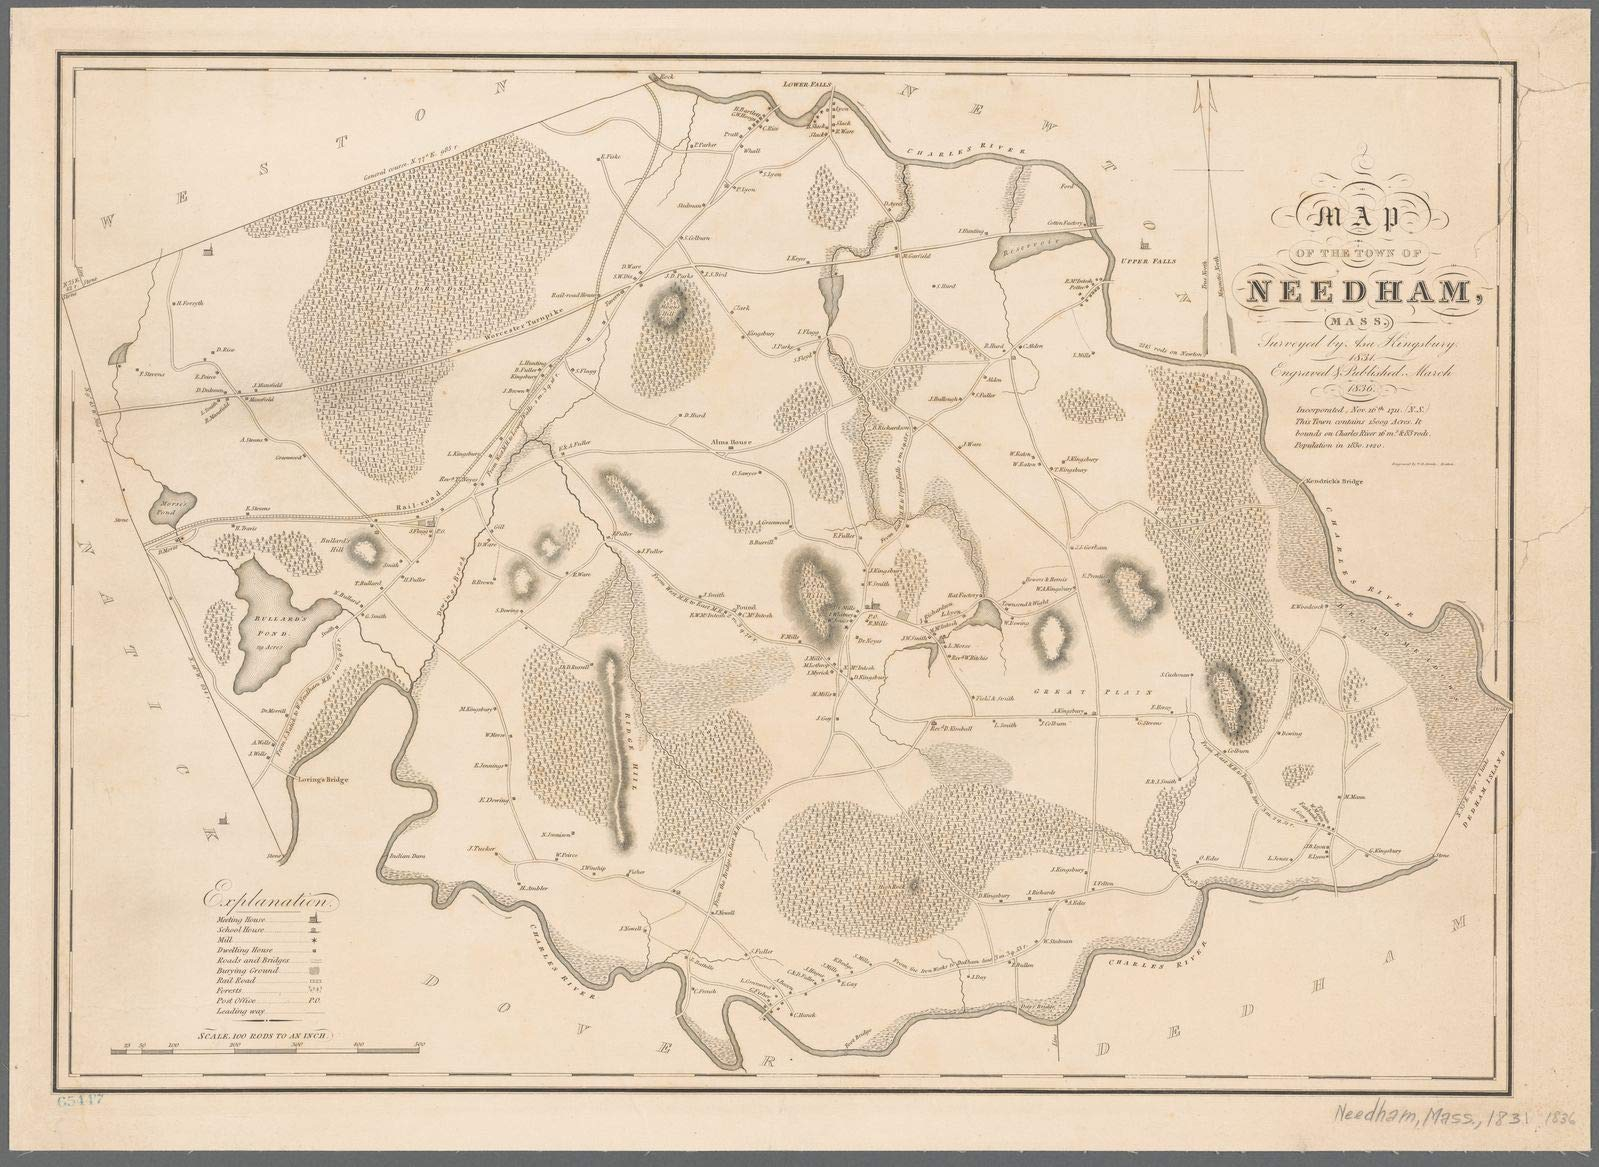 Vintography Reprinted 18 x 24 1836 Map of Boston, Mass. Nova Suecia, Eller The Swenska Revier Now Delaware River in India Occidentalis Publisher not identified 0 0 64a